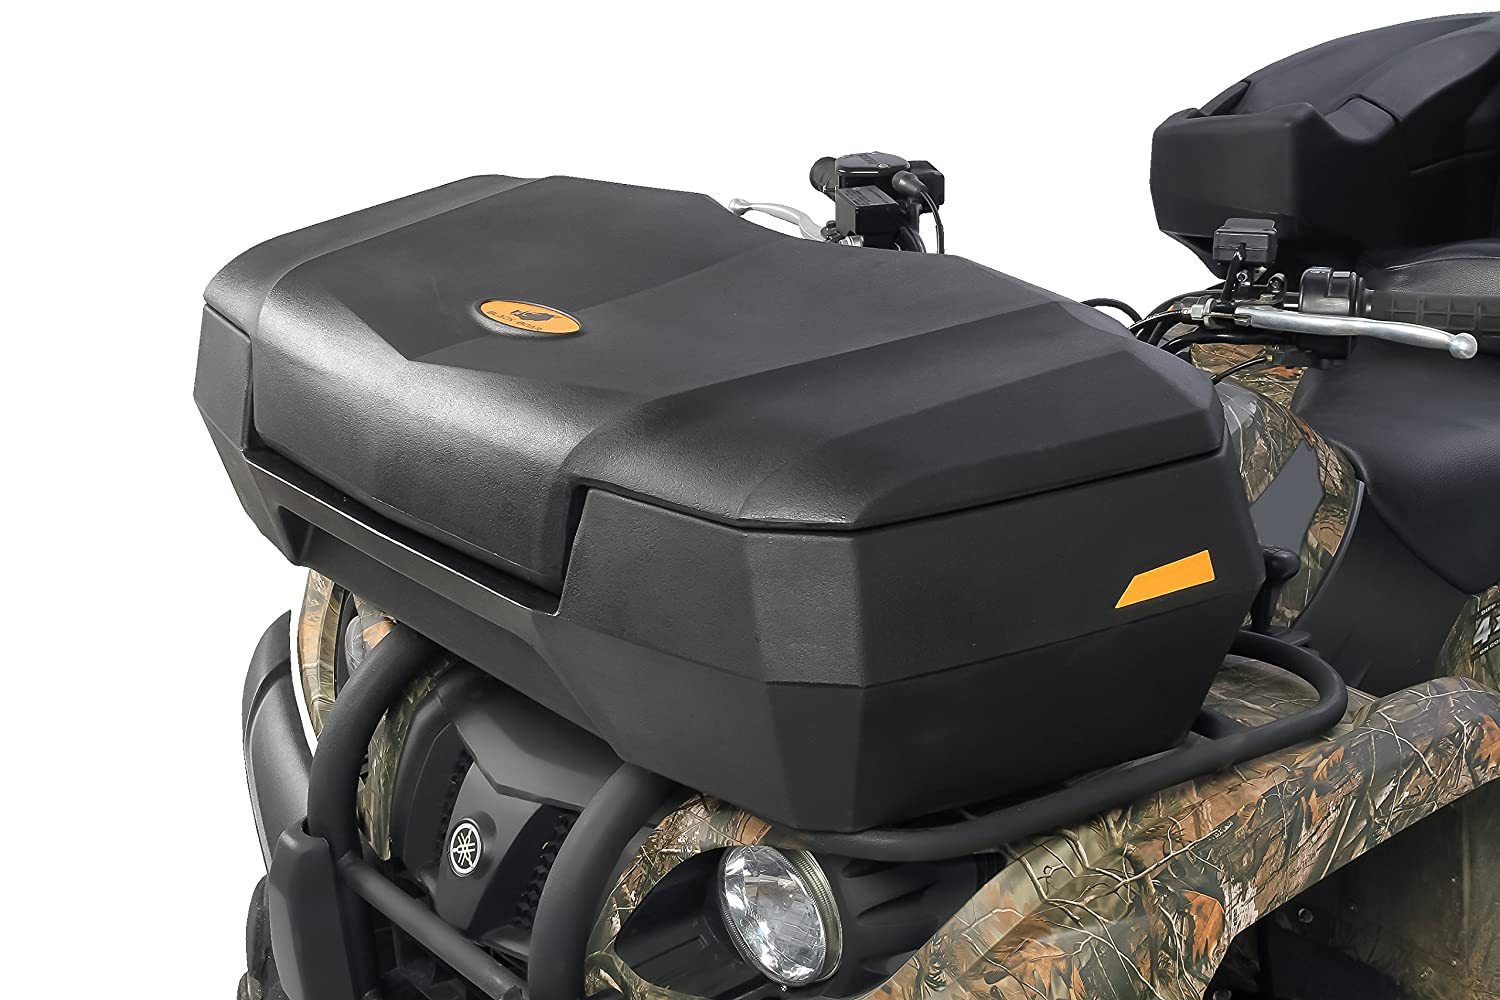 Black Boar Atv Rear Storage Box And Lounger 66010 Includes All Mounting Hardware Luggage Racks